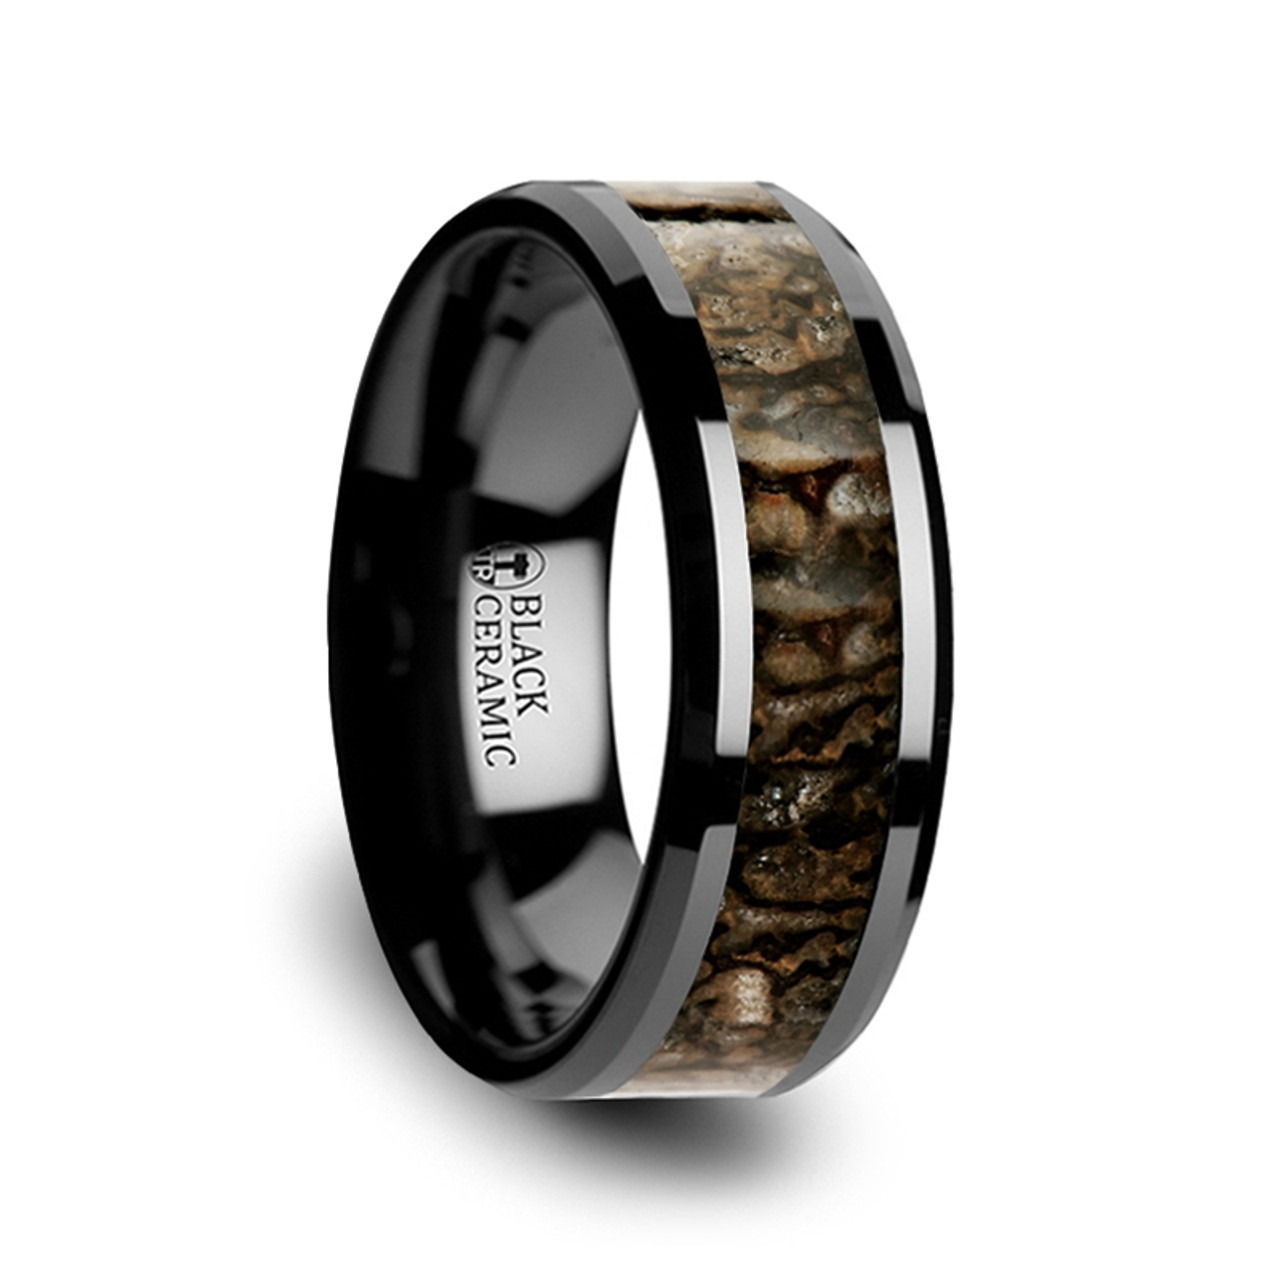 red wedding carbide band dyscinitus rings dinosaur tungsten with inlay bone